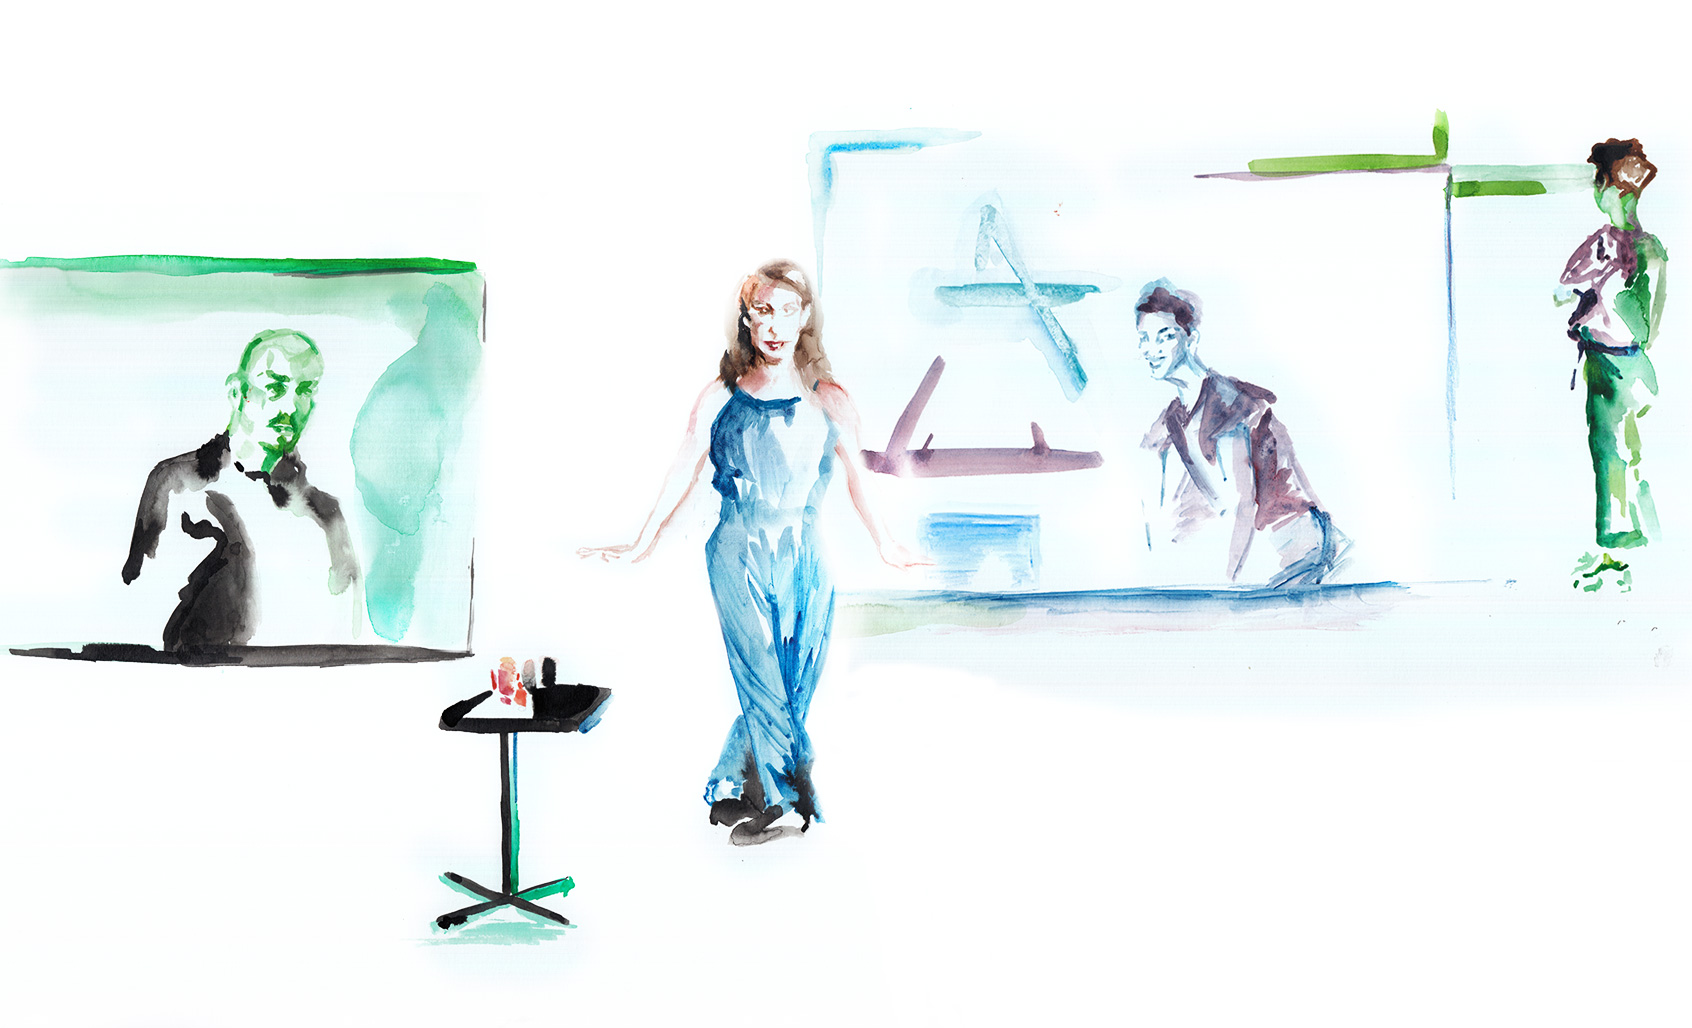 Carte Blanche to César Vayssié at the Ménagerie de Verre: Volmir Cordeiro, Julia Perazzini, Raphaëlle Delaunay and Dominique Gilliot by Araso